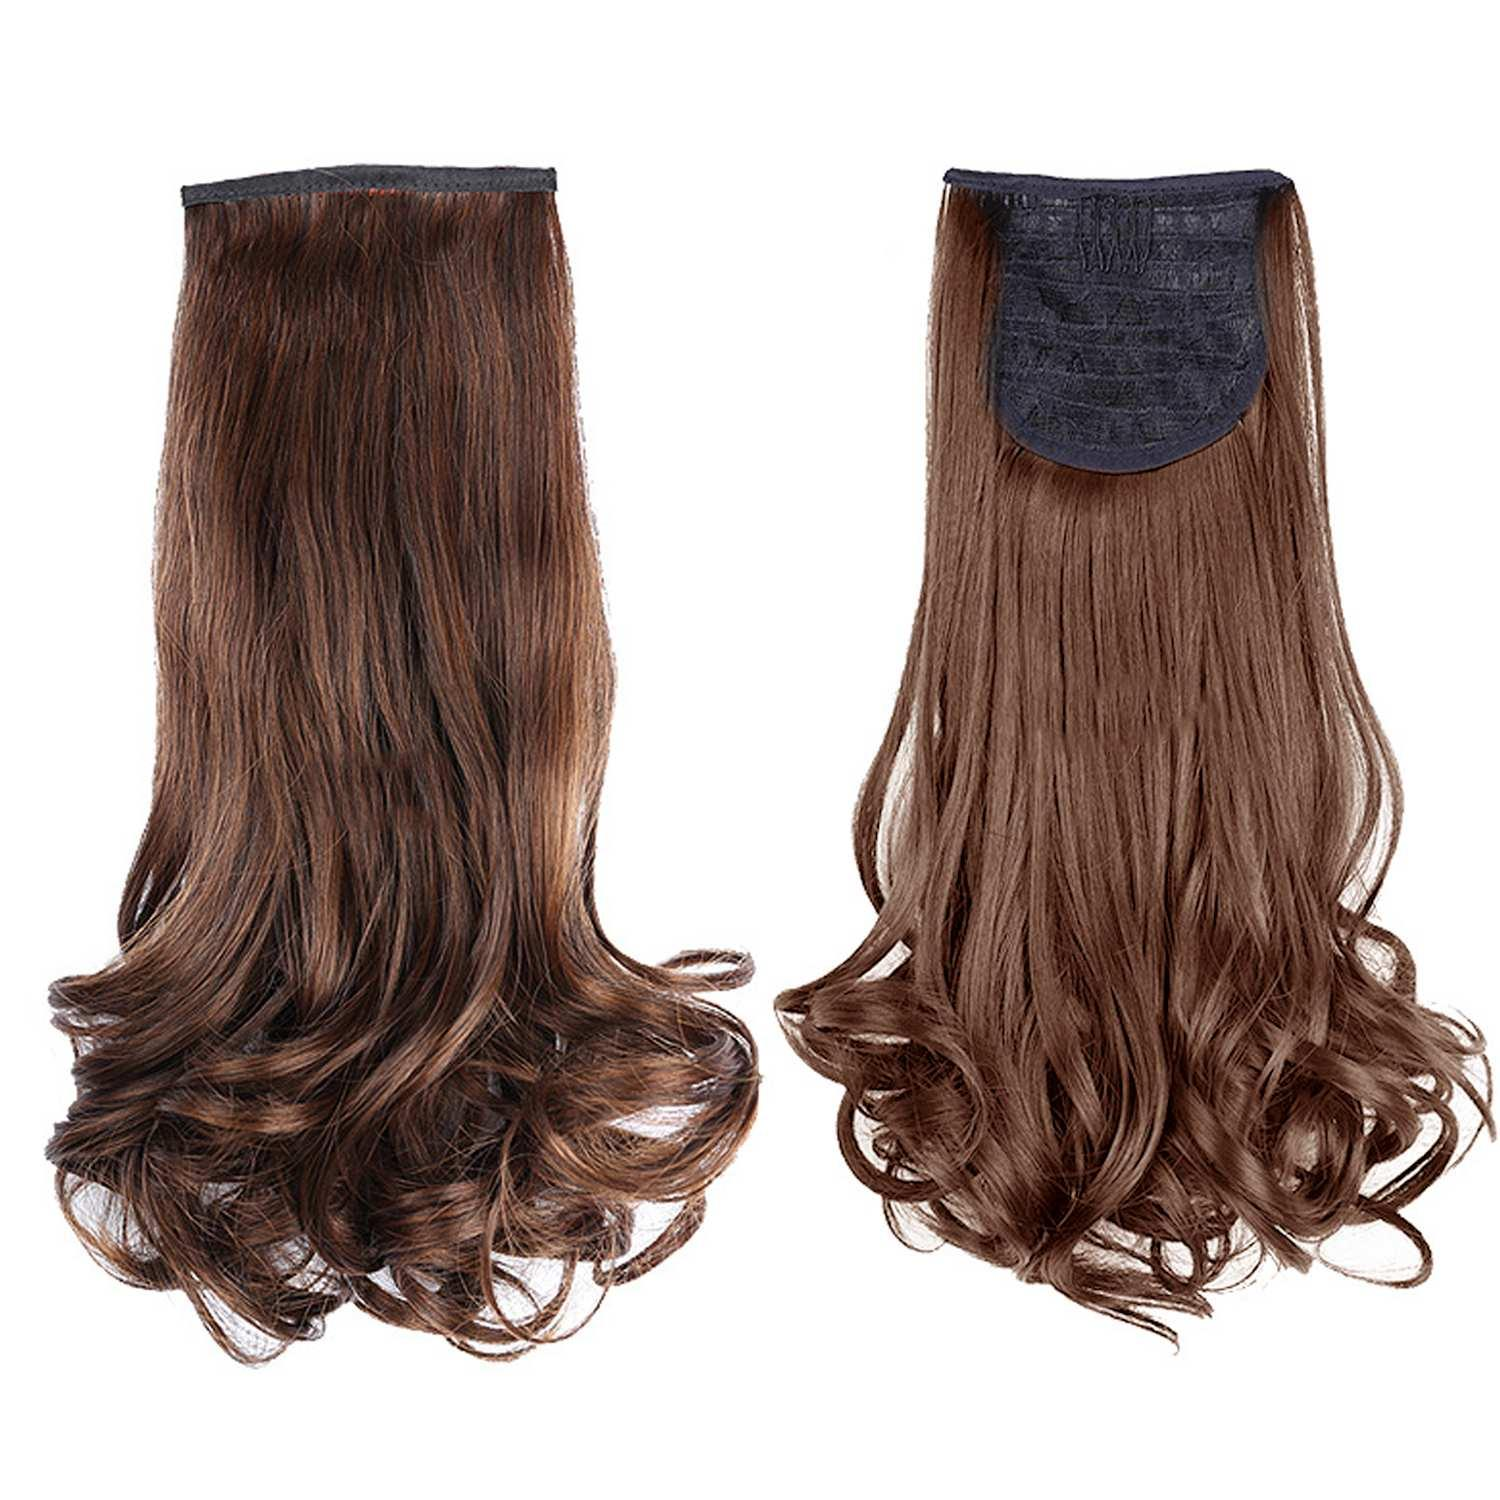 ... Perpanjangan Rambut model klip clip wigs long curly 55 cm 16. Source · Women Clip in Curly Wave Hair Extensions Wigs Ponytail Hairpieces 48cm Brown